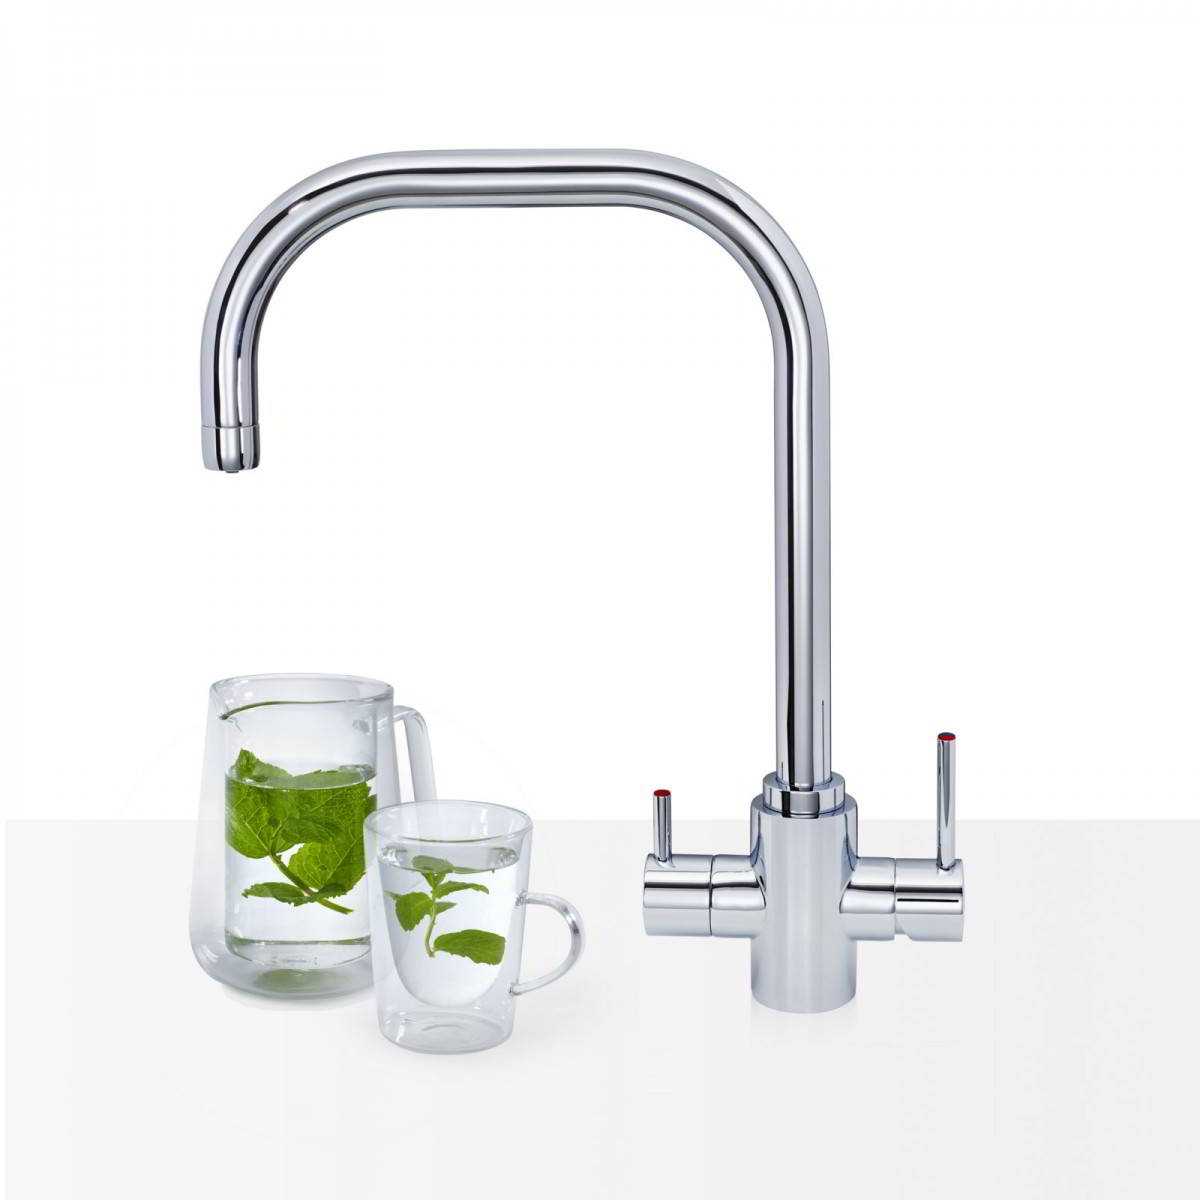 Samara 3 In 1 Chrome Instant Hot Water Tap My Hot Tap